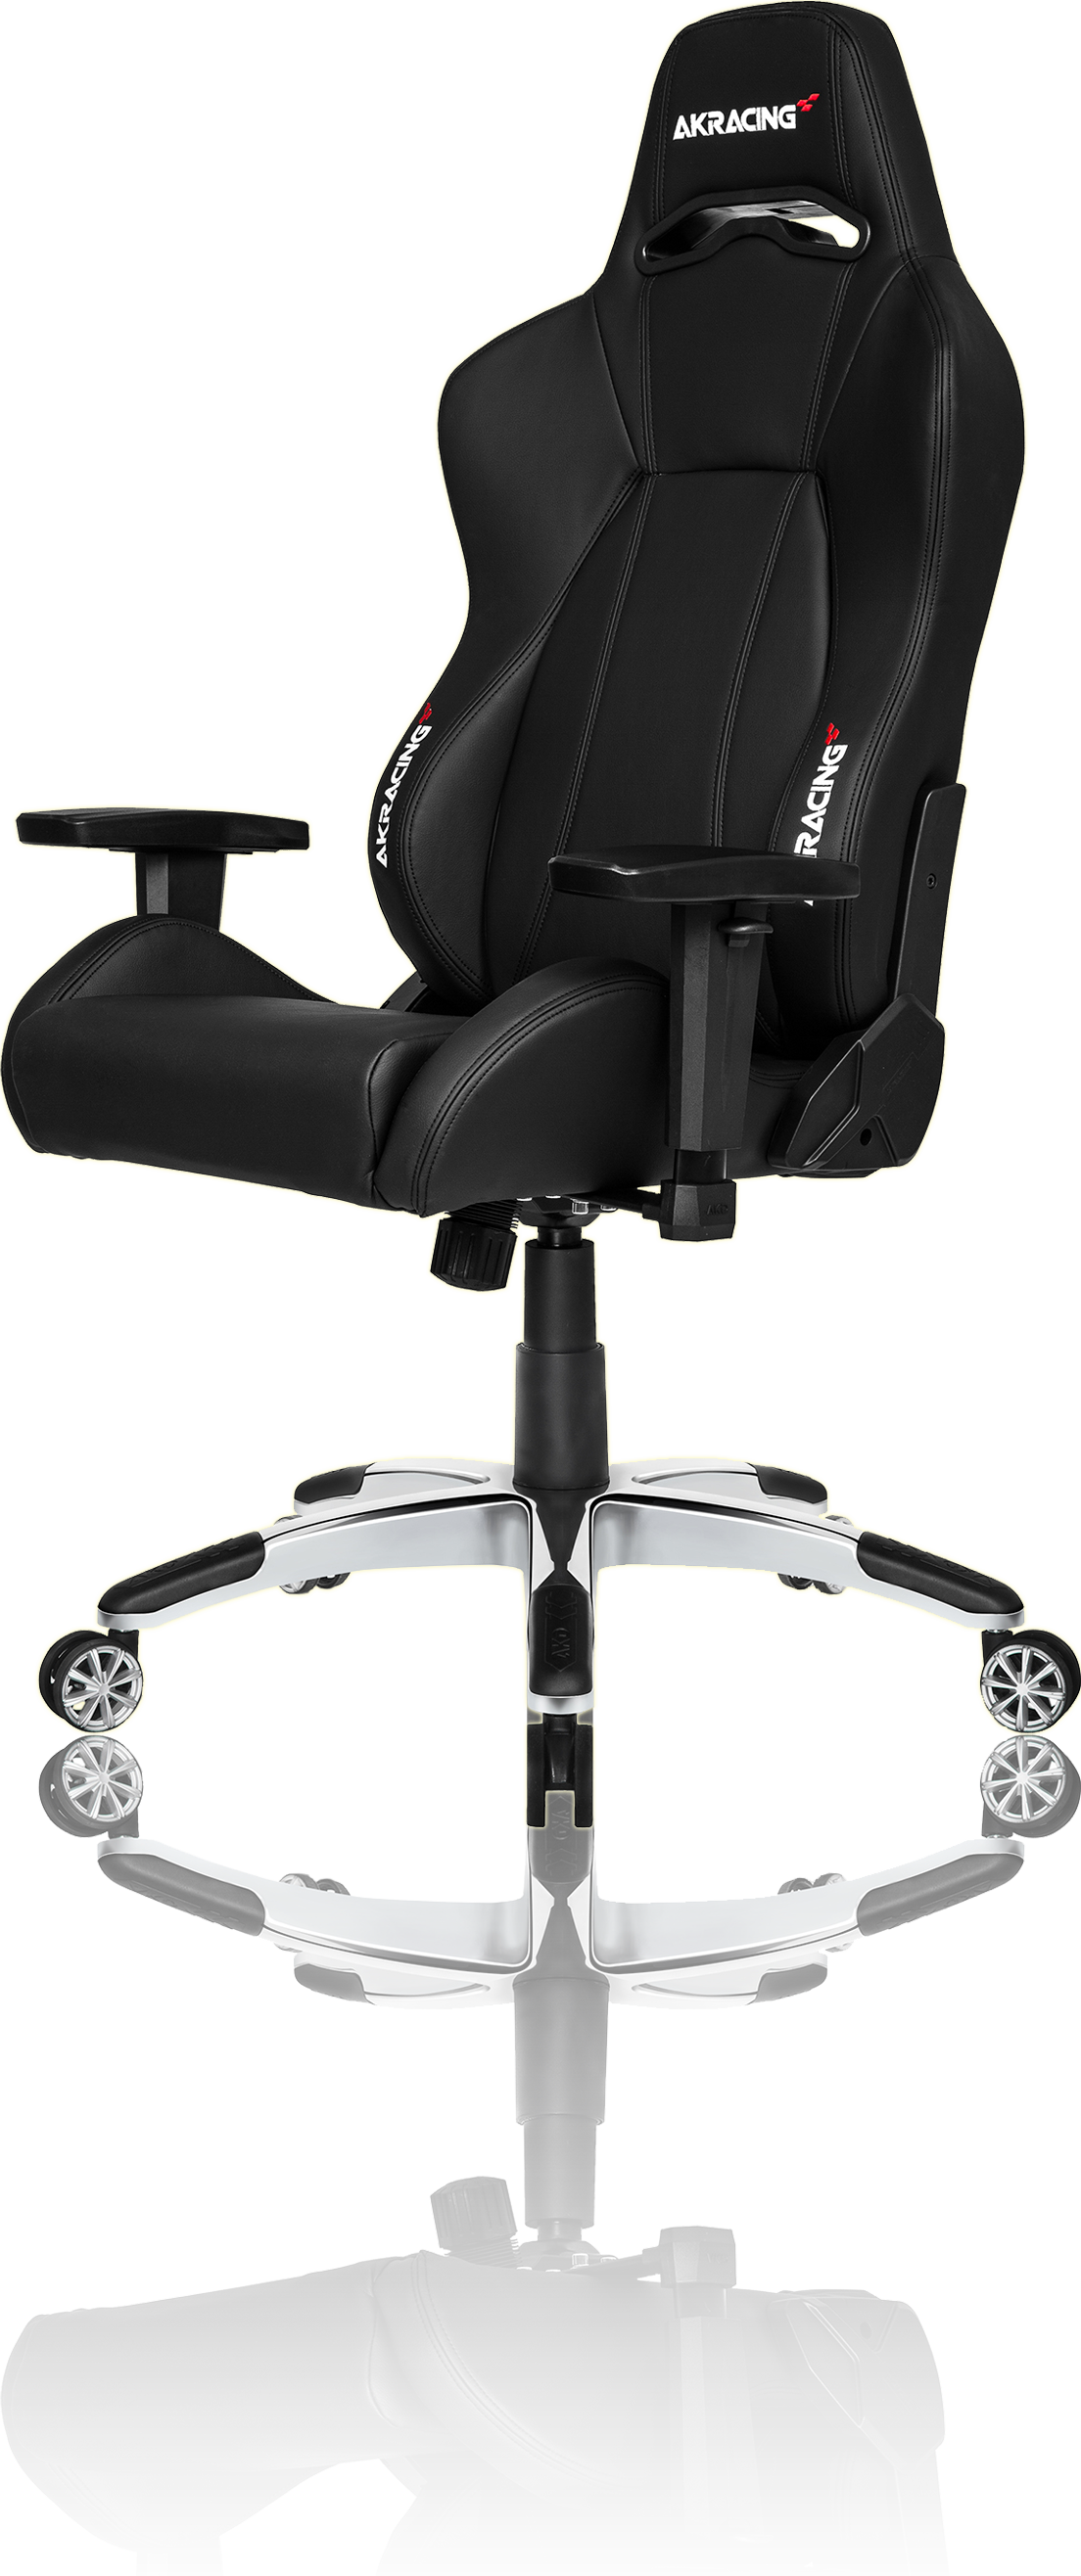 Superb Akracing Premium Gaming Chair Black V2 Machost Co Dining Chair Design Ideas Machostcouk